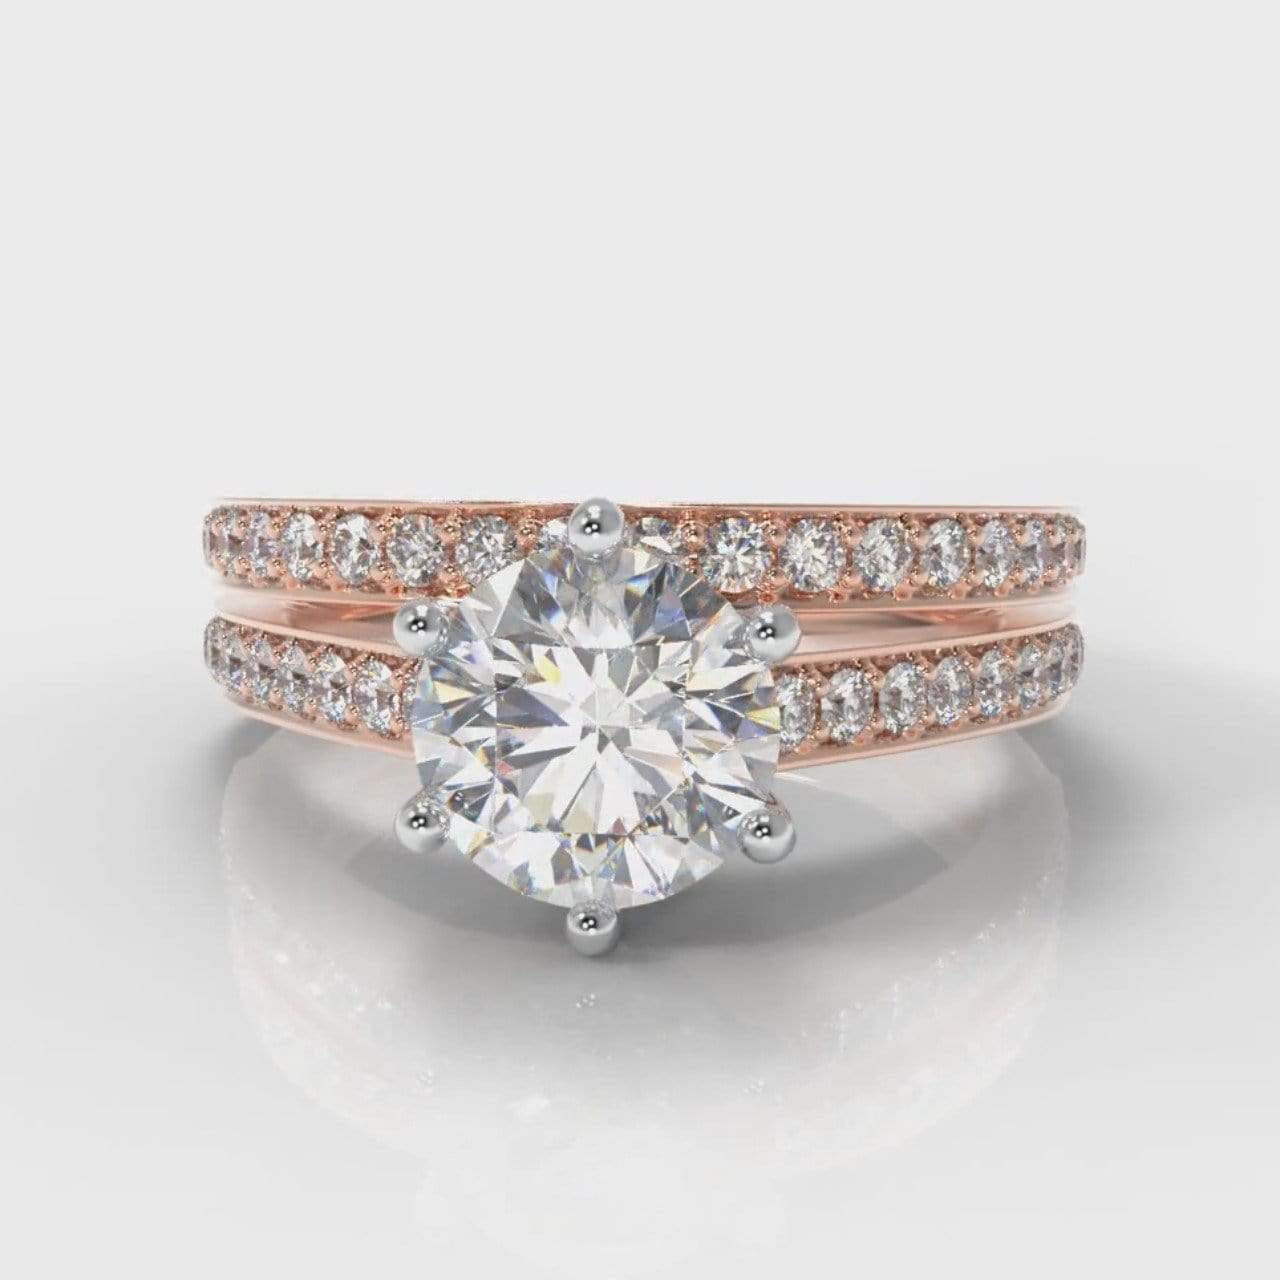 Six Claw Pavé Accent Round Brilliant Cut Lab Diamond Bridal Ring Set - Rose Gold-Ring Setting-Pure Carats-Pure Carats